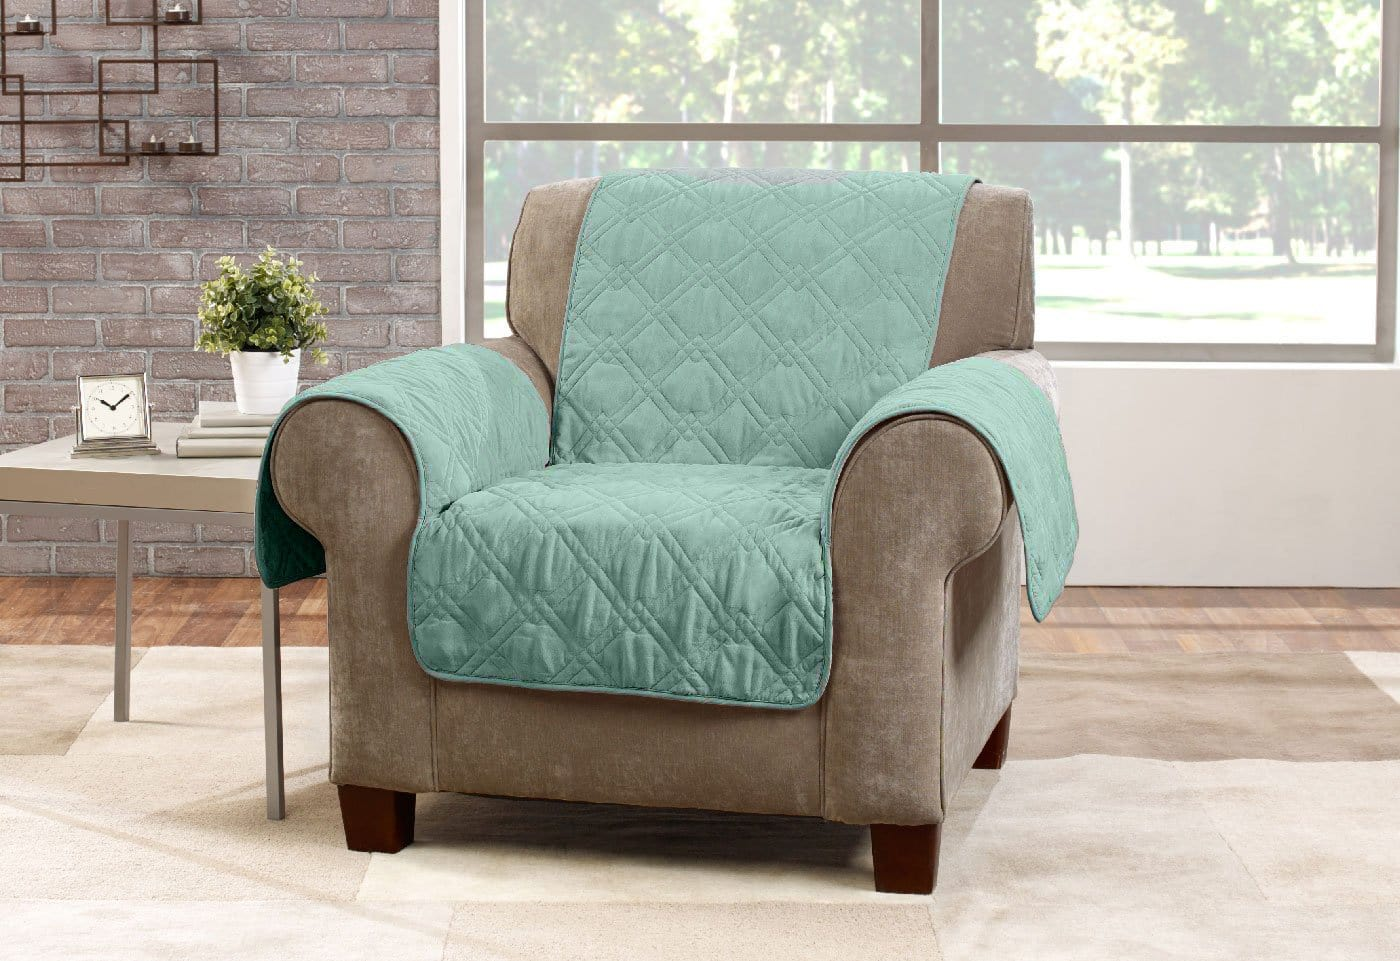 Microfiber Pet Chair Quilted Furniture Cover Pet Furniture Cover Machine Washable - Sea Glass / Chair